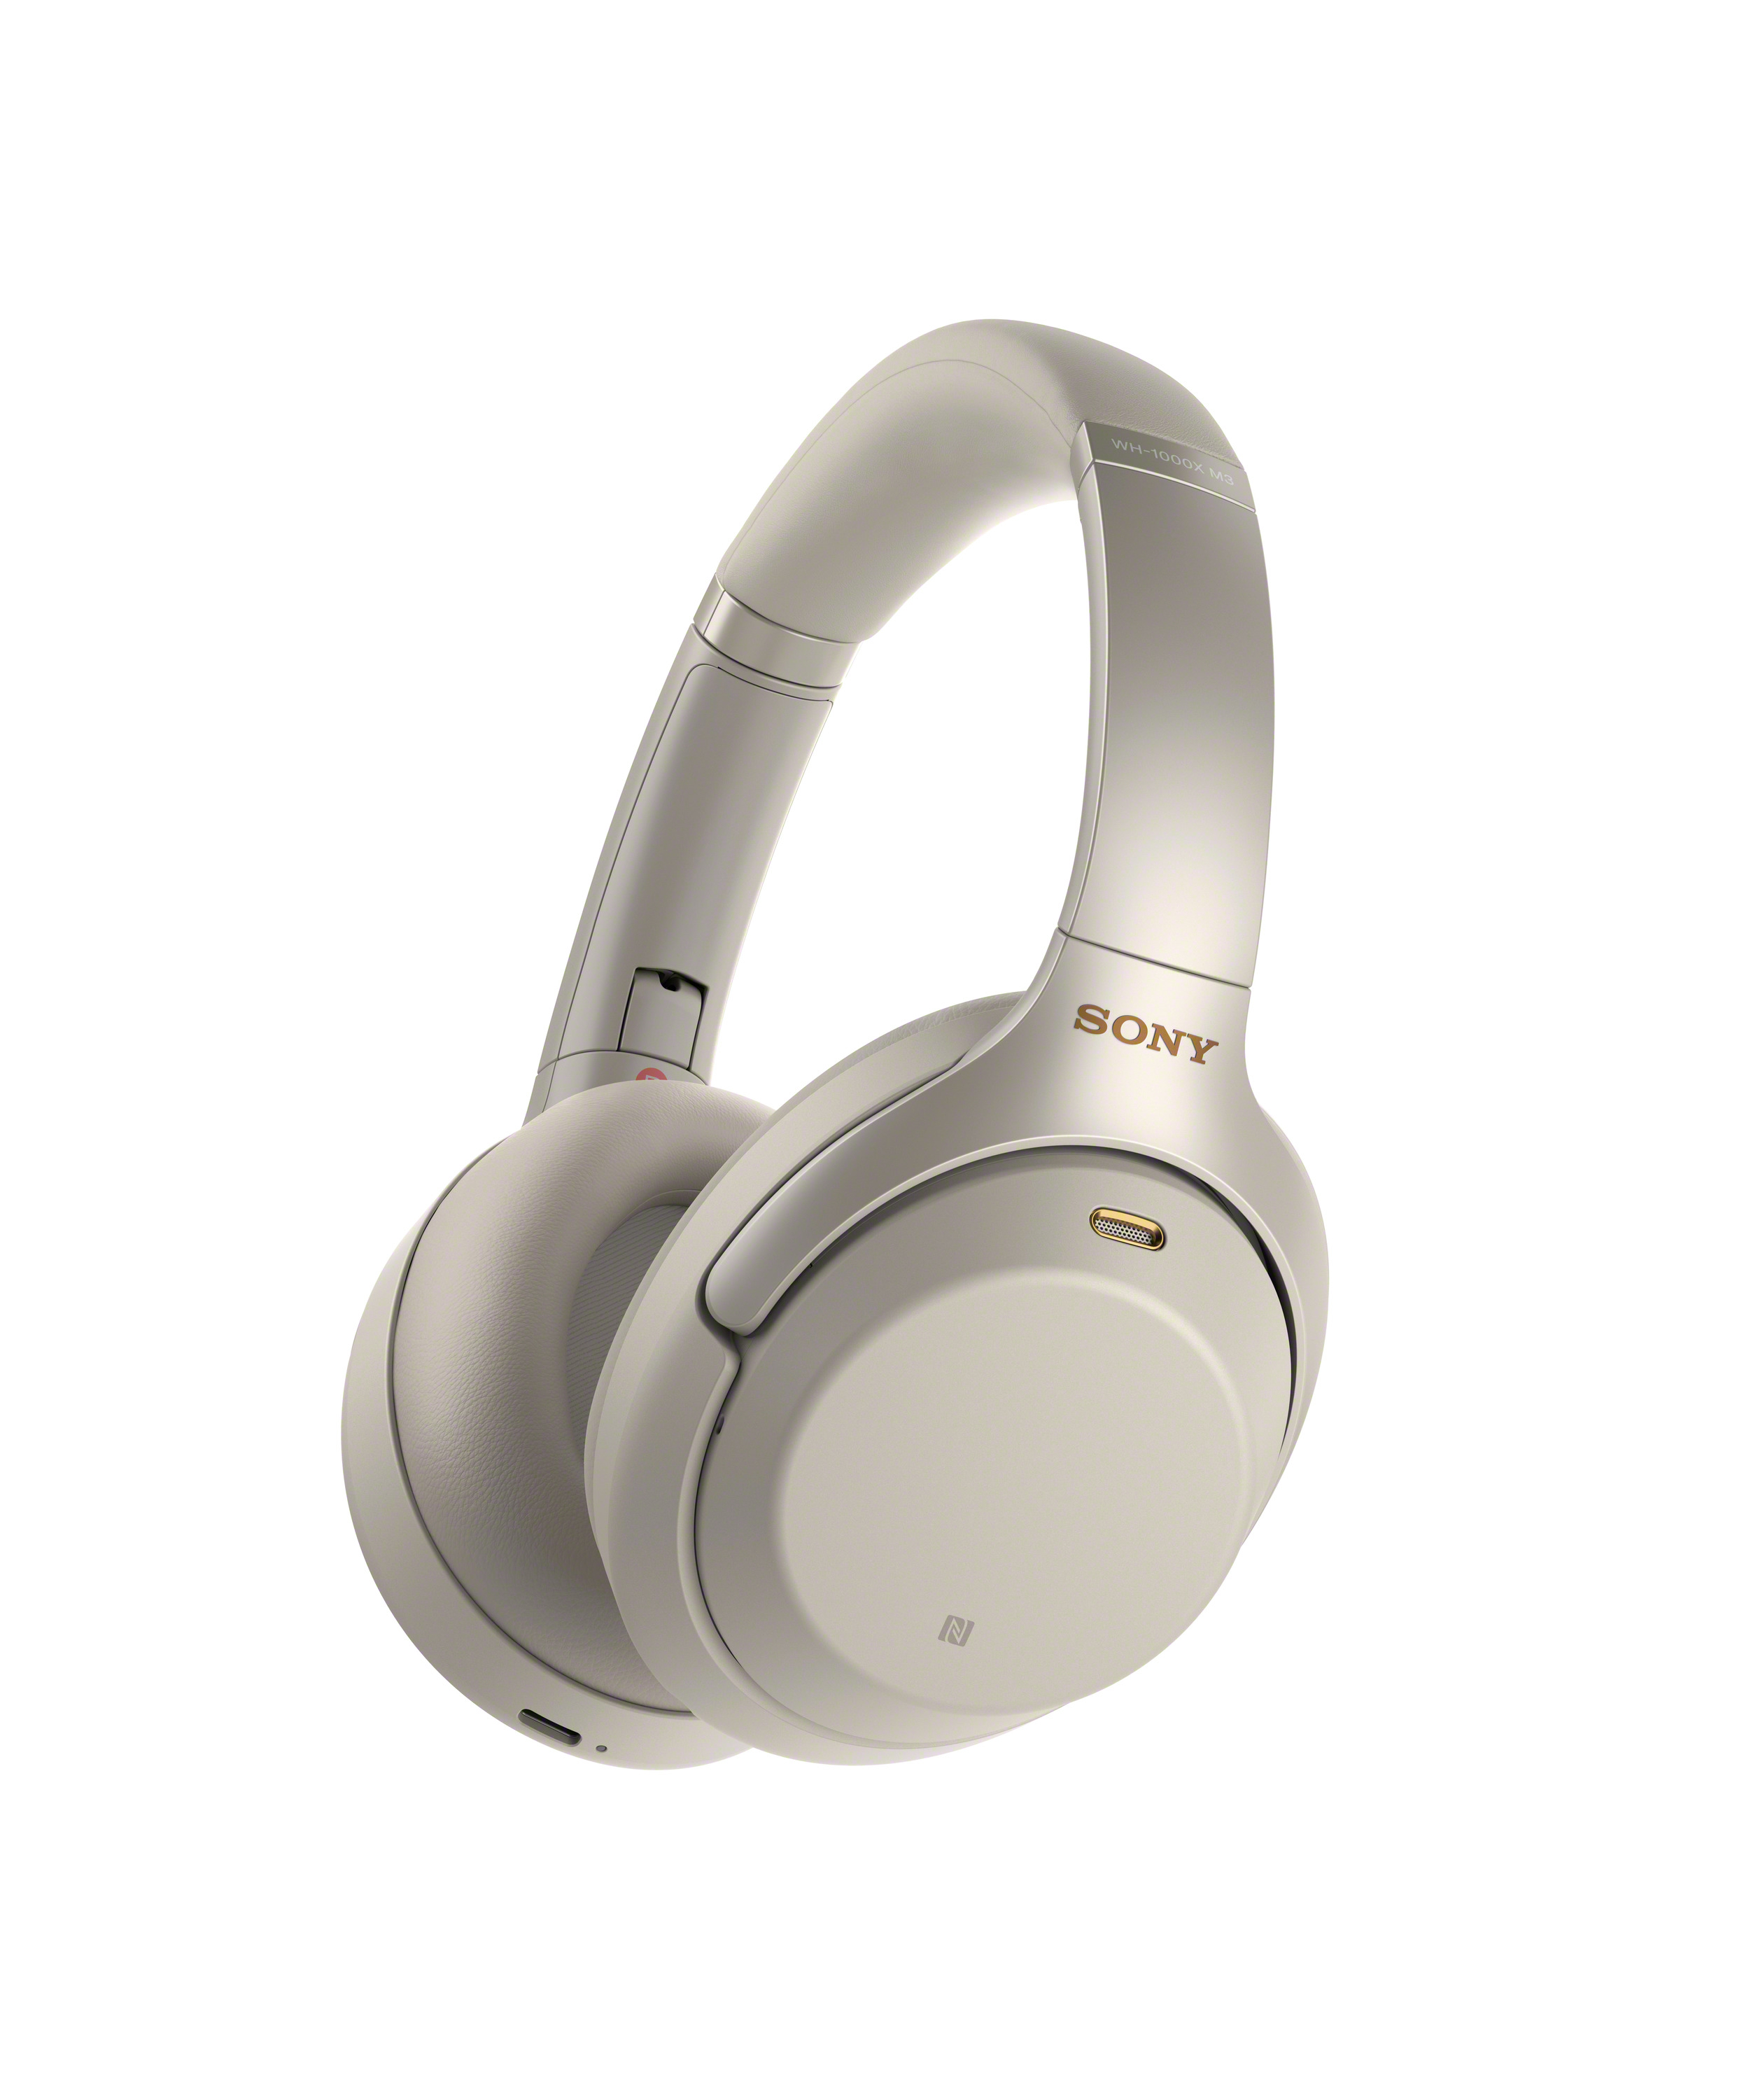 Sony Noise Cancelling Headphones - Best Headphones for Listening to Musics